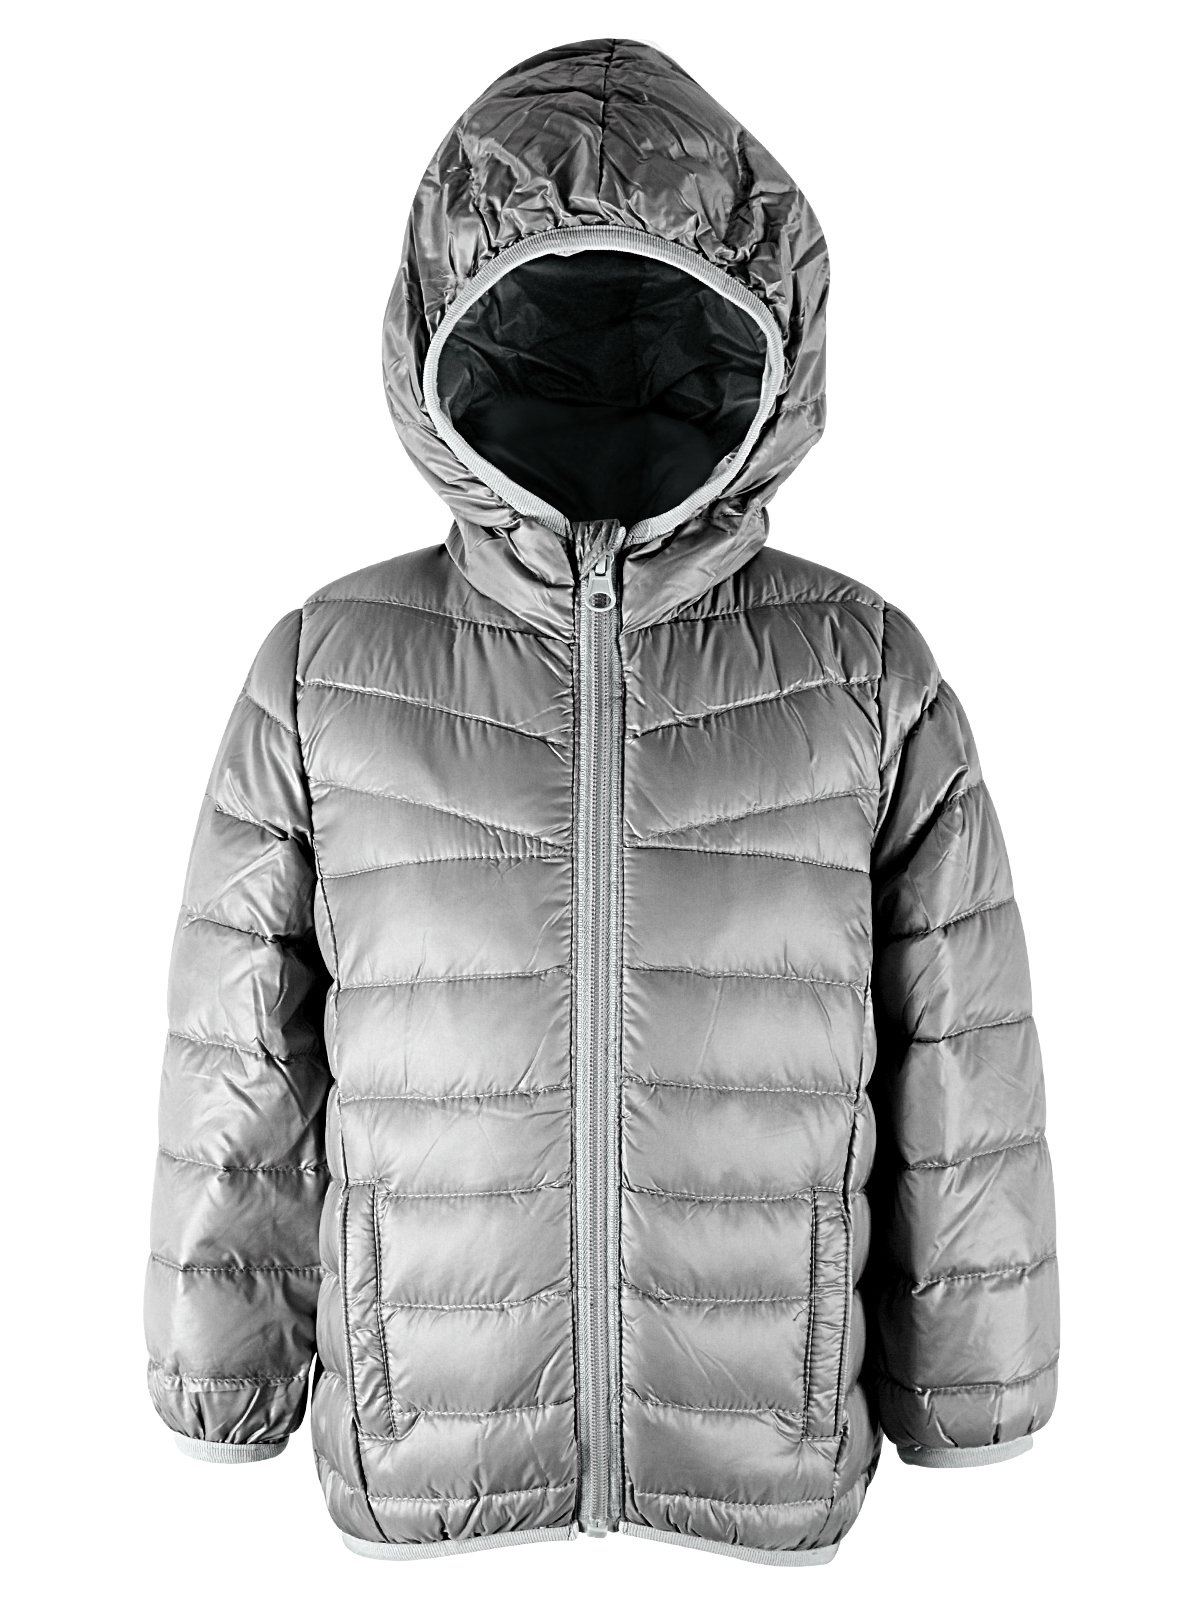 American Trends Kids Warm Down Jackets for Girls Boys Puffer Winter Coat Lightweight Packable Hooded Parka Zipper Outerwear Grey 6-6X/LABEL 140